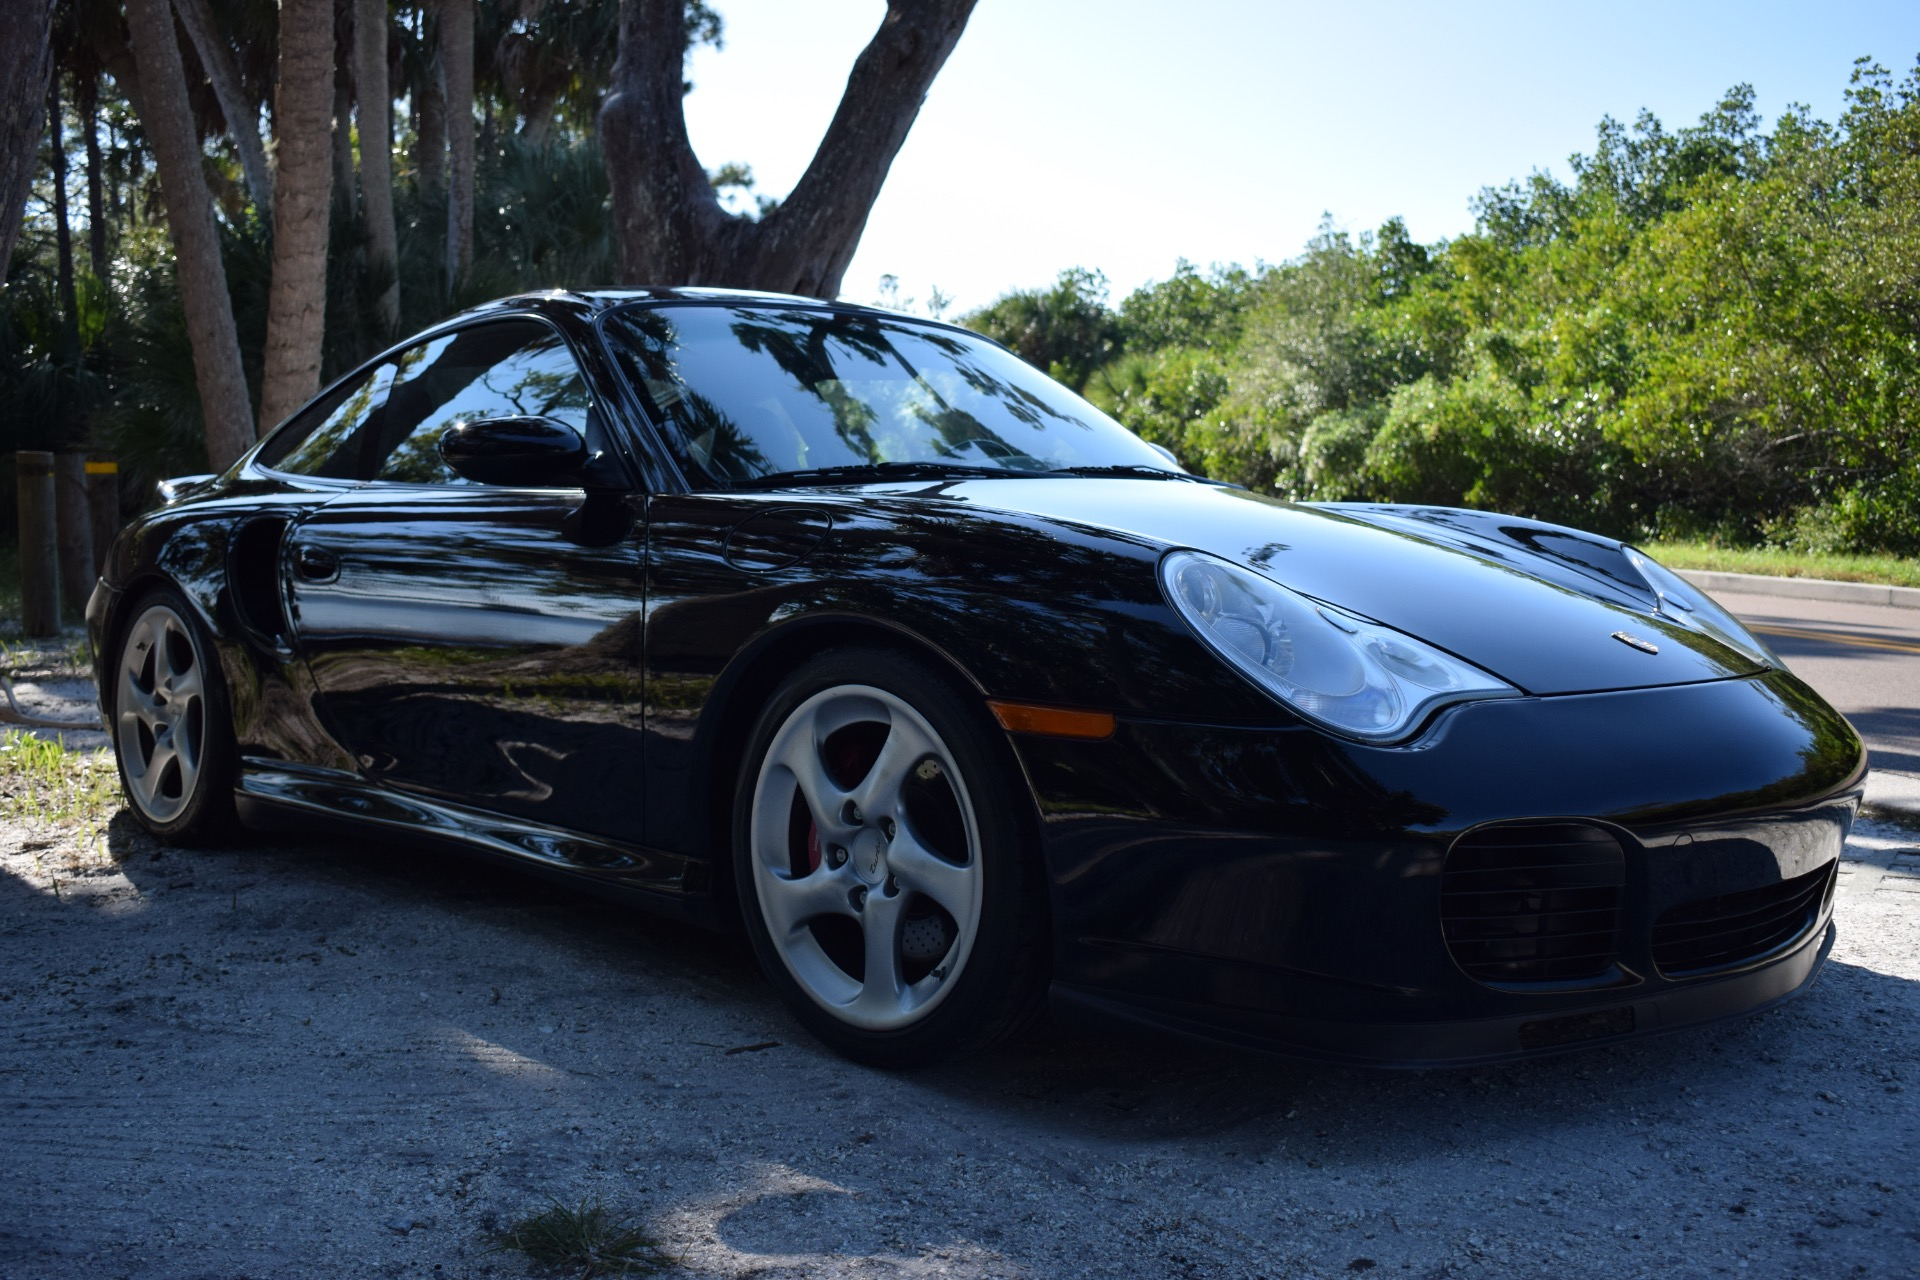 Used 2001 Porsche 911 Turbo Coupe 2D for sale Sold at Track and Field Motors in Safety Harbor FL 34695 1